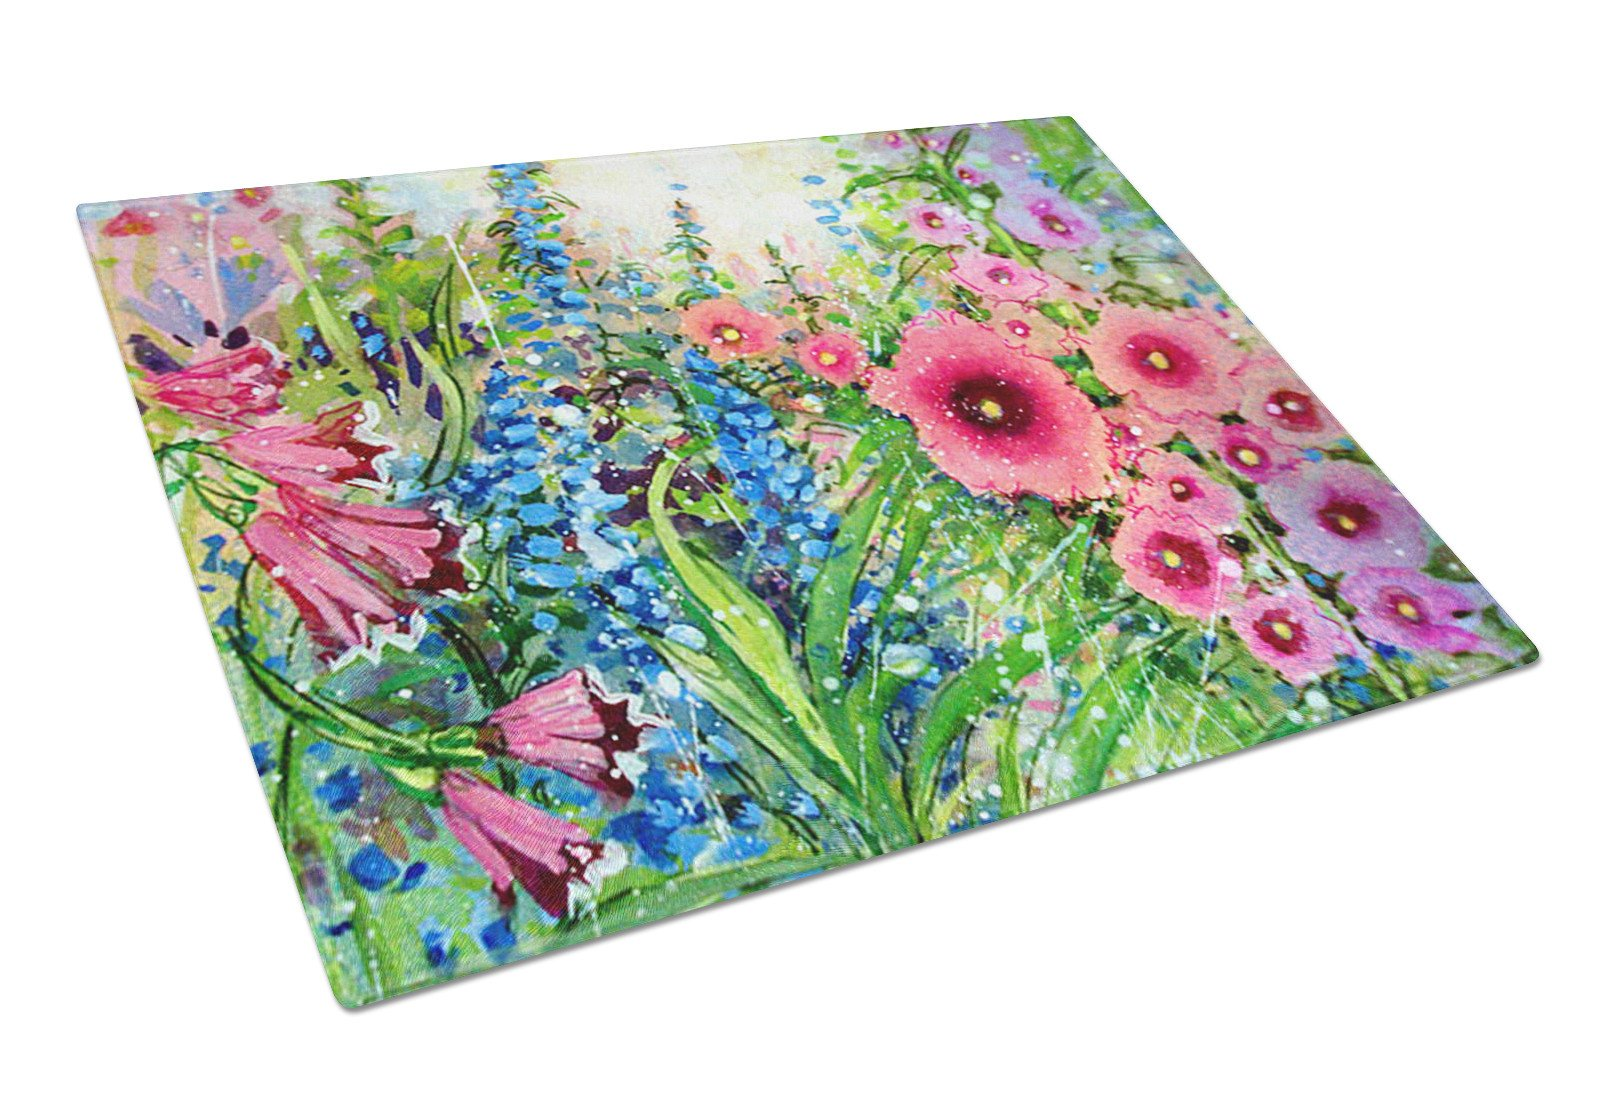 Easter Garden Springtime Flowers Glass Cutting Board Large PJC1107LCB by Caroline's Treasures